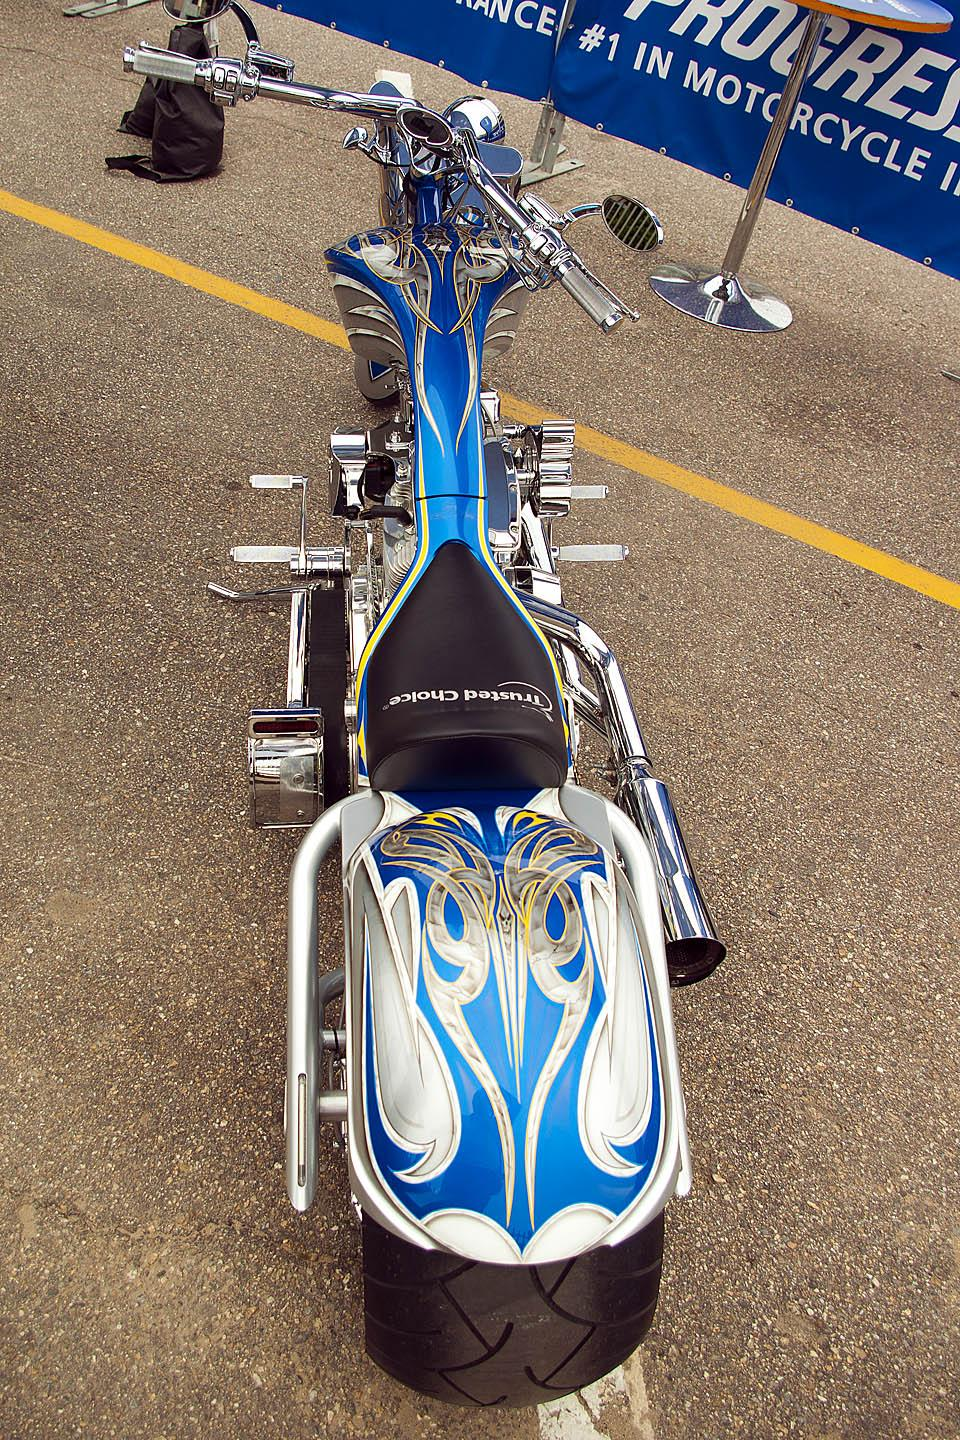 wide tire show bike